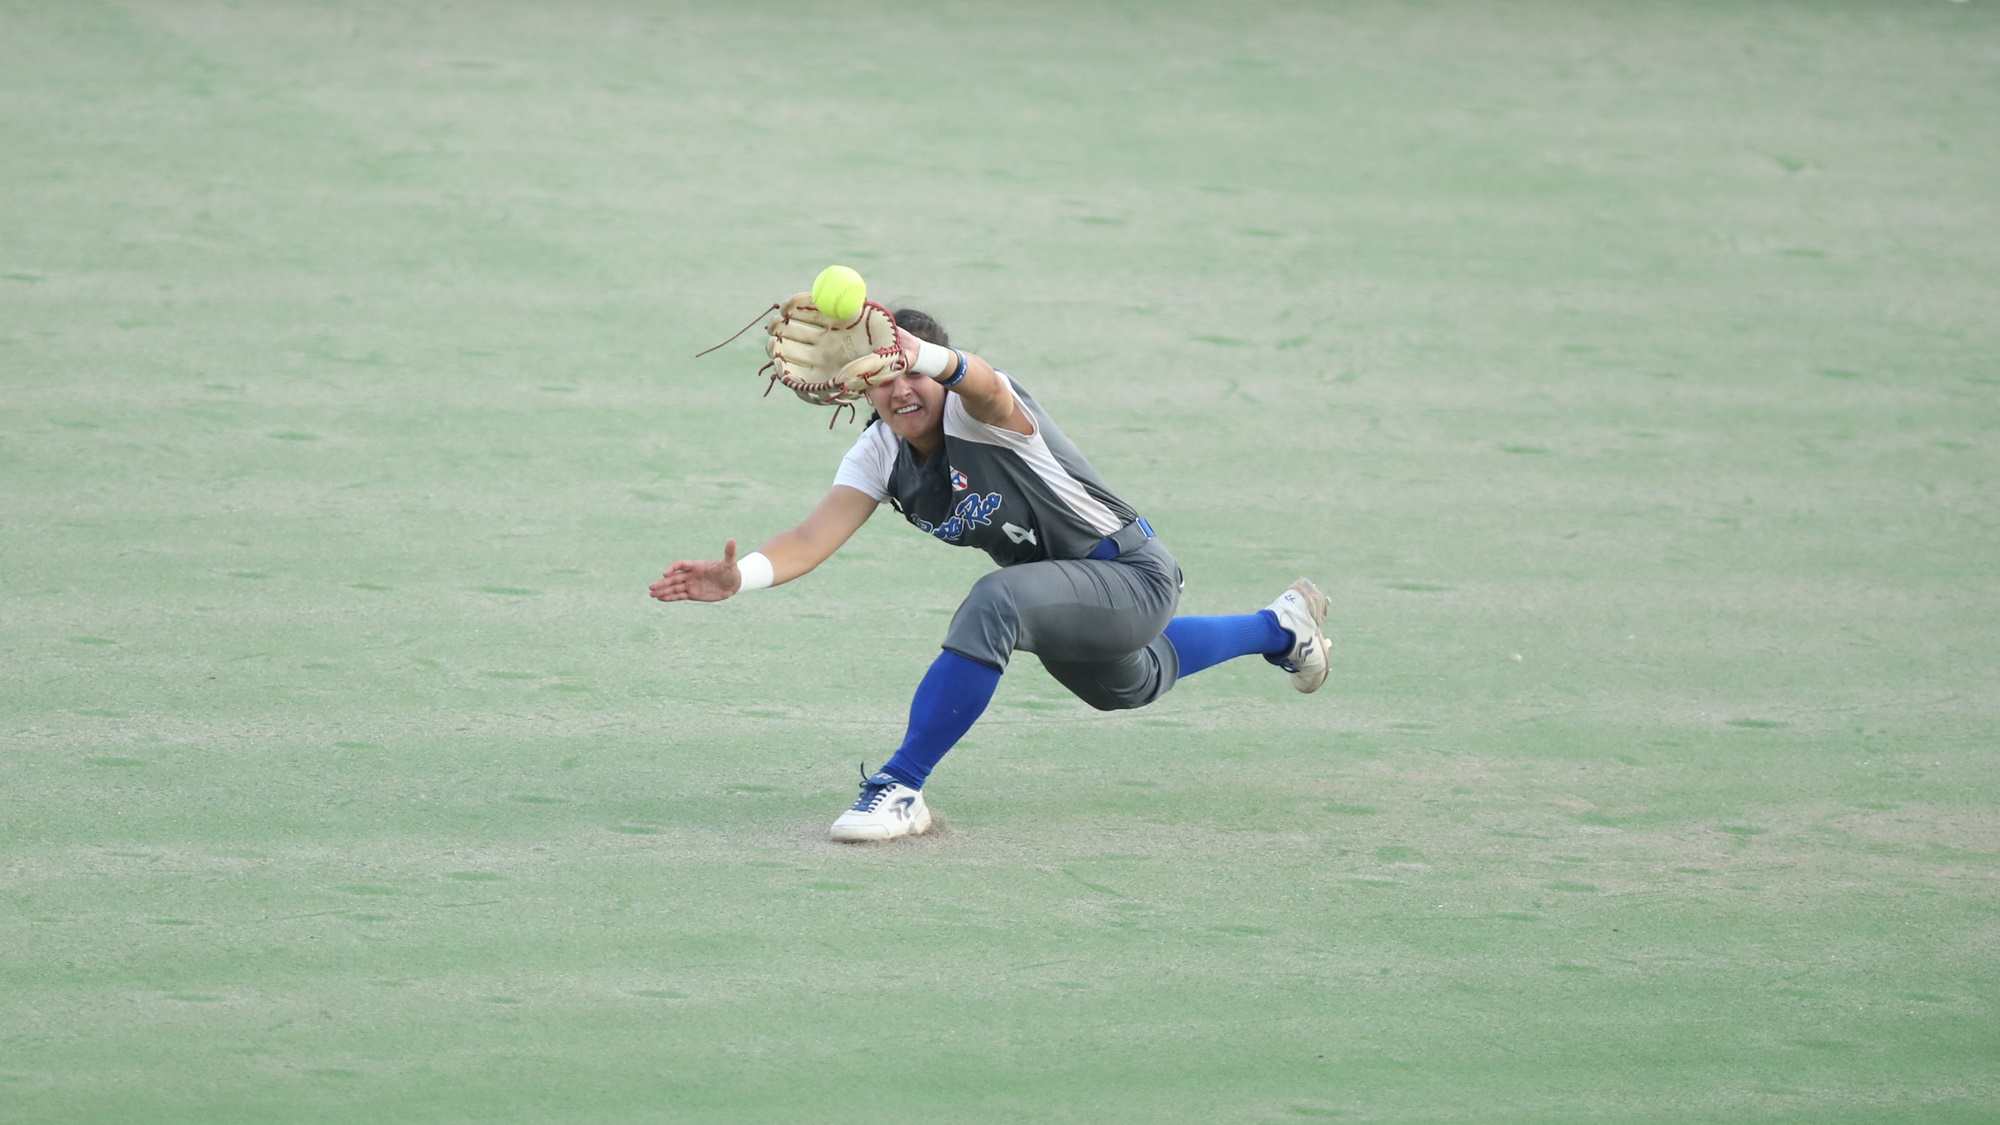 Elicia D'Orazio makes a great catch to keep alive the no-no